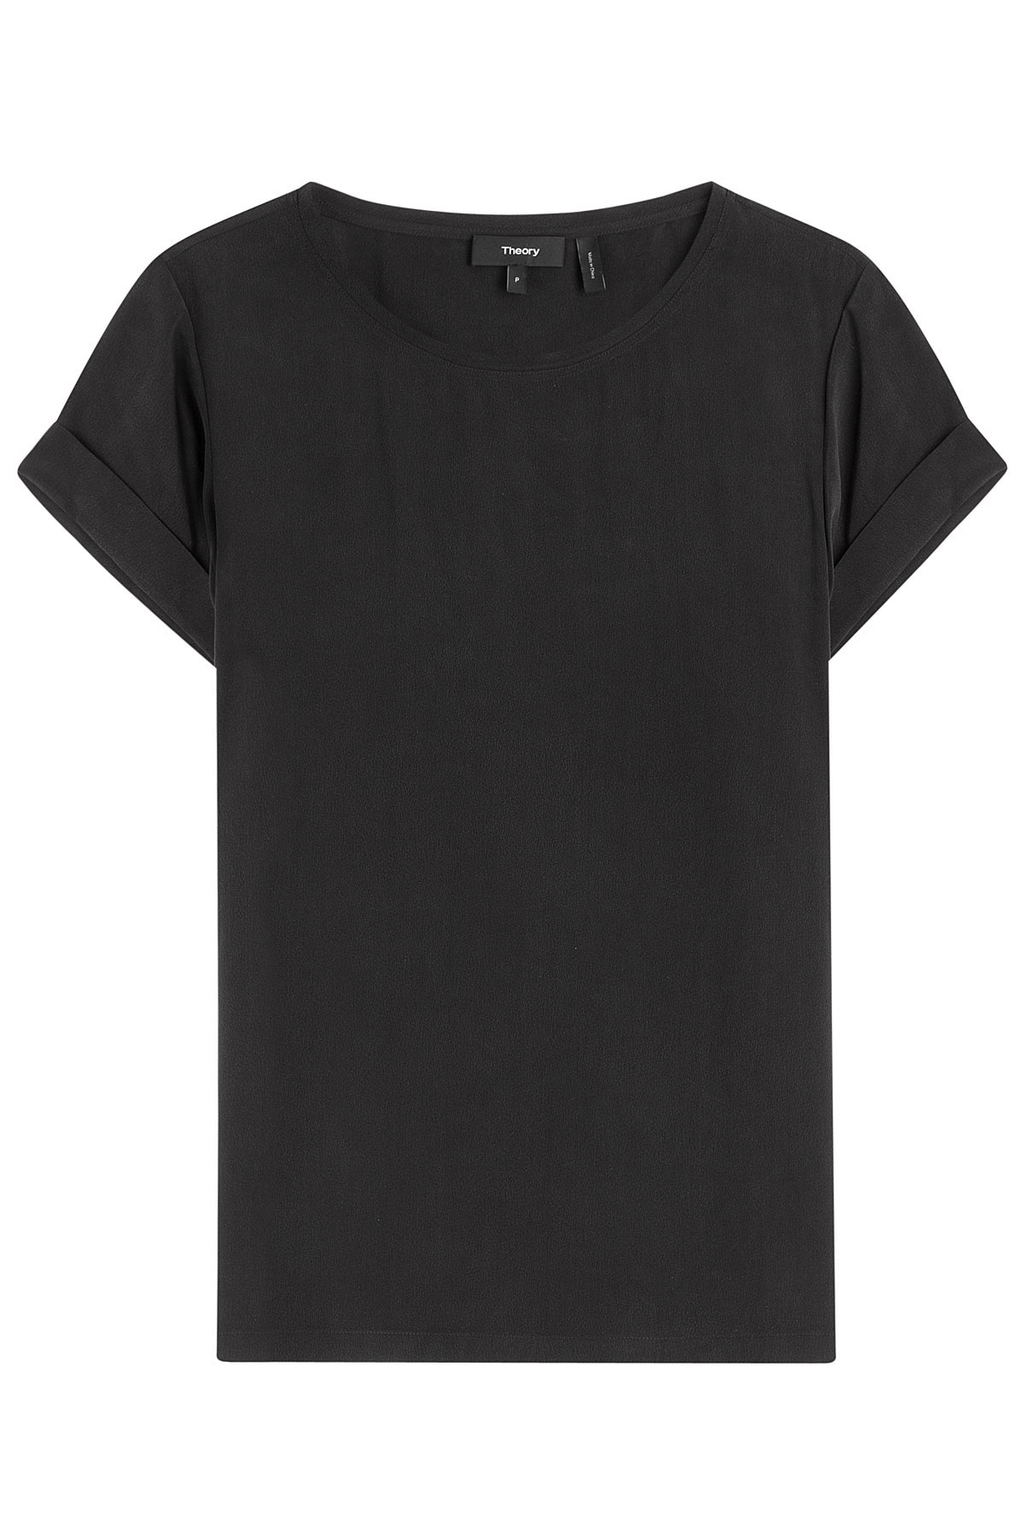 Silk Top - neckline: round neck; pattern: plain; style: t-shirt; predominant colour: black; occasions: casual, work, creative work; length: standard; fibres: silk - 100%; fit: straight cut; sleeve length: short sleeve; sleeve style: standard; texture group: silky - light; pattern type: fabric; season: s/s 2016; wardrobe: basic